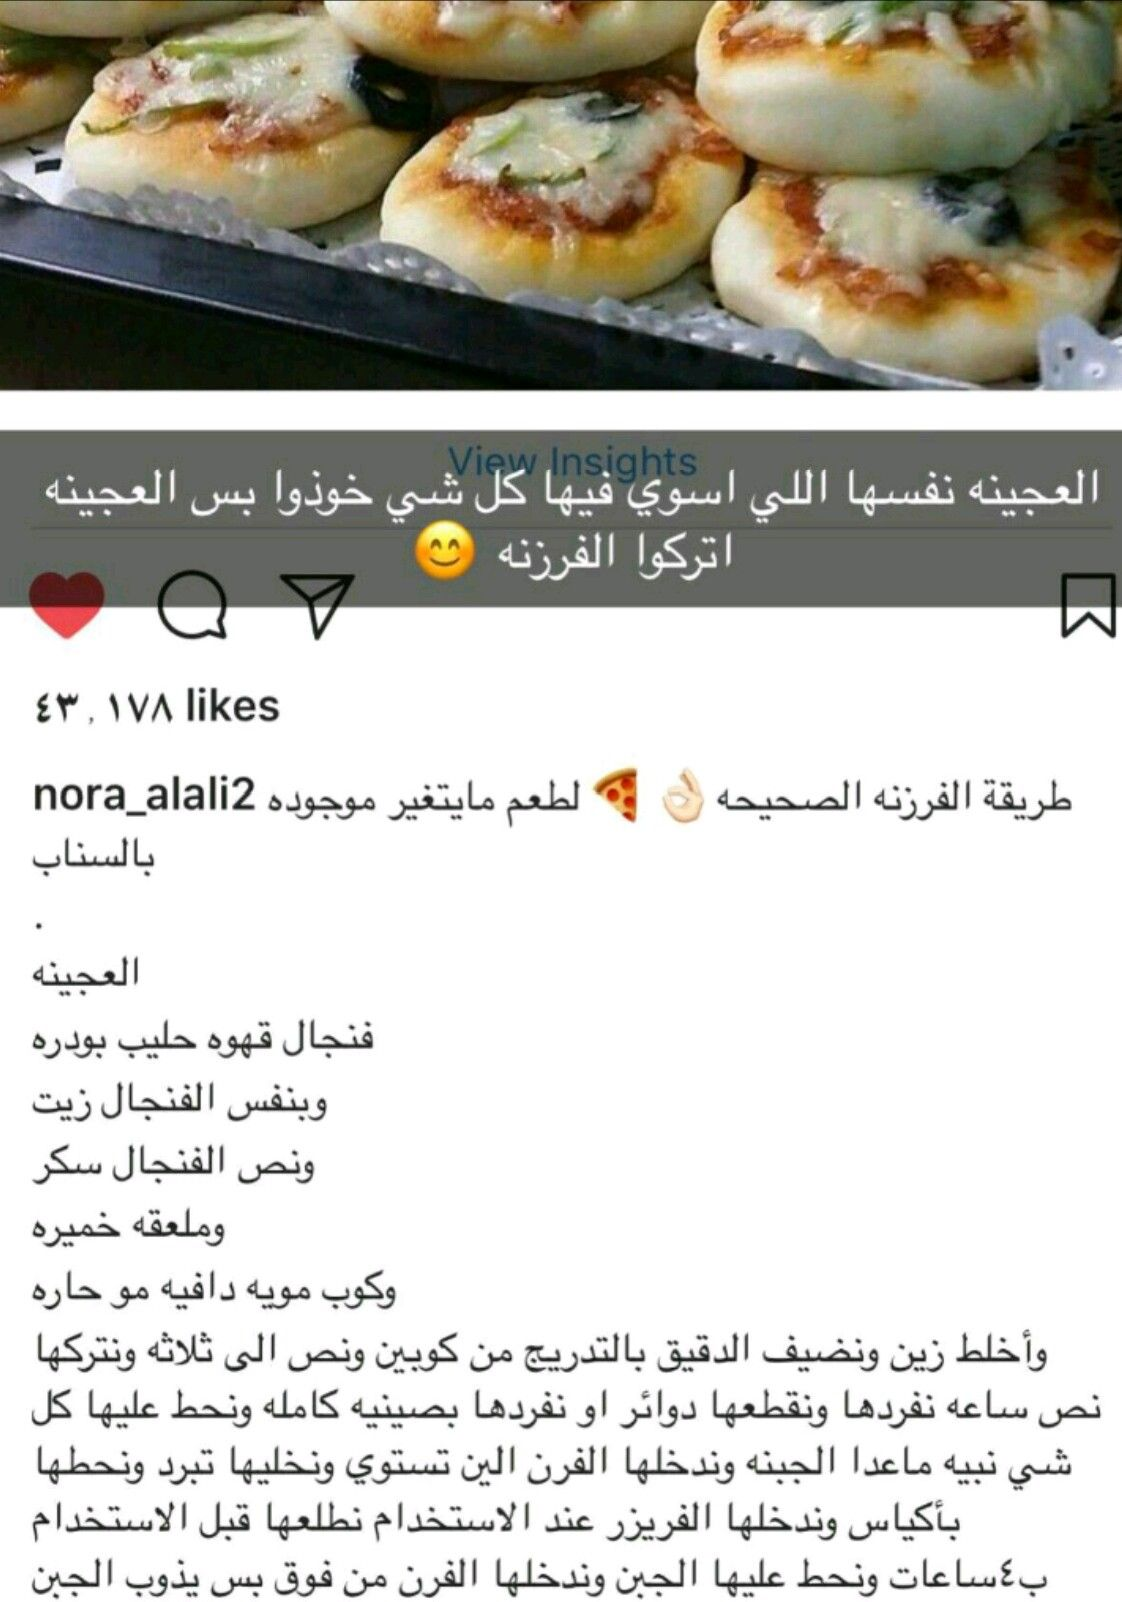 Pin By Asma Alotaibi On طبخ Food Cooking Hot Dog Buns